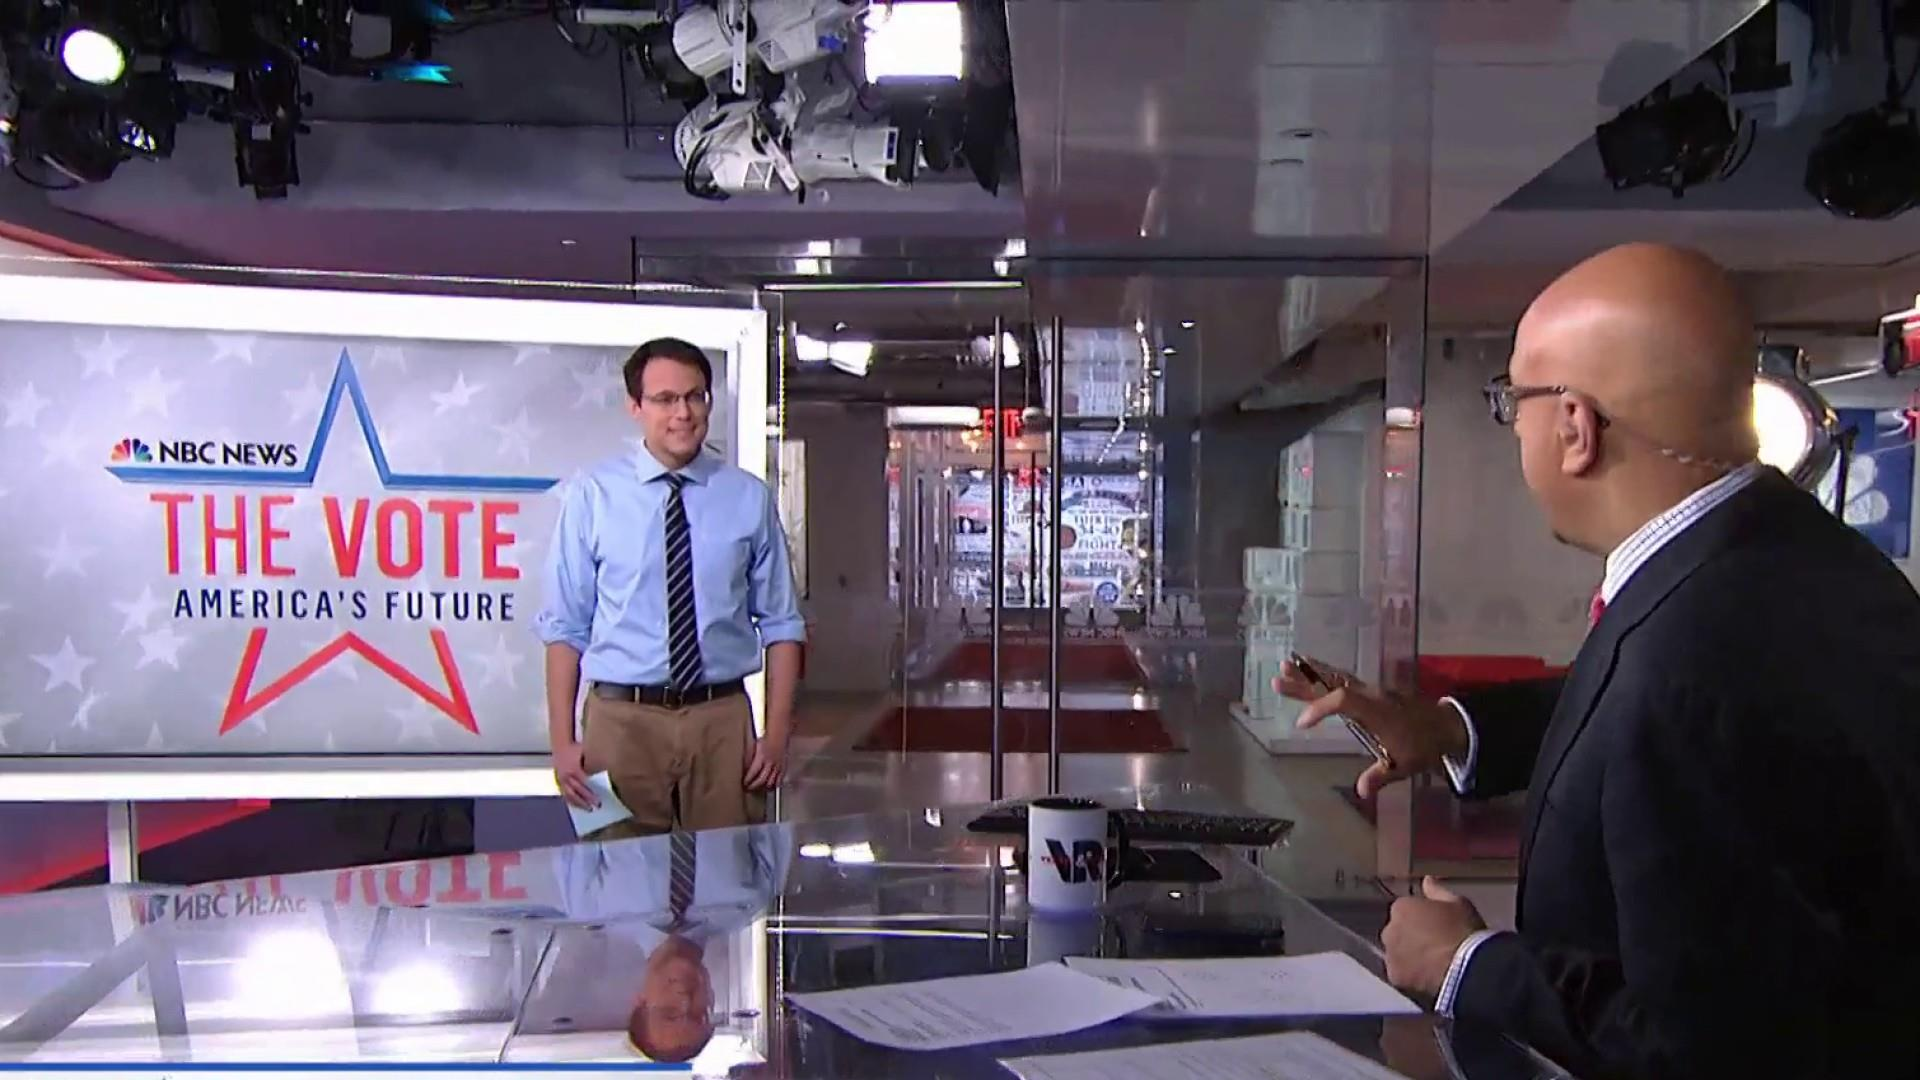 Candidates heading into homestretch as midterms heat up